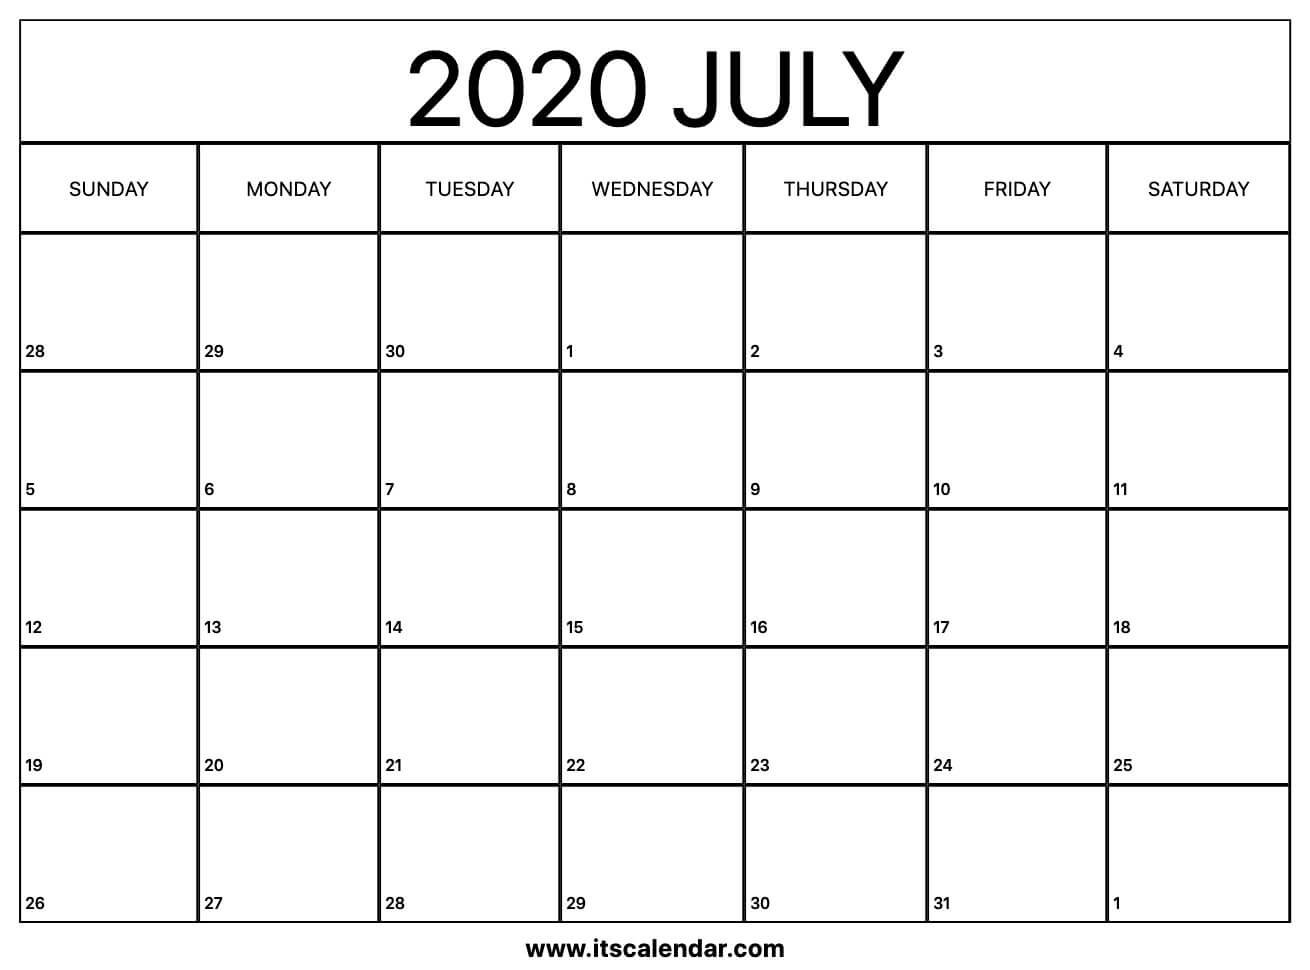 Free Printable July 2020 Calendar Calendar To Fill In And Print